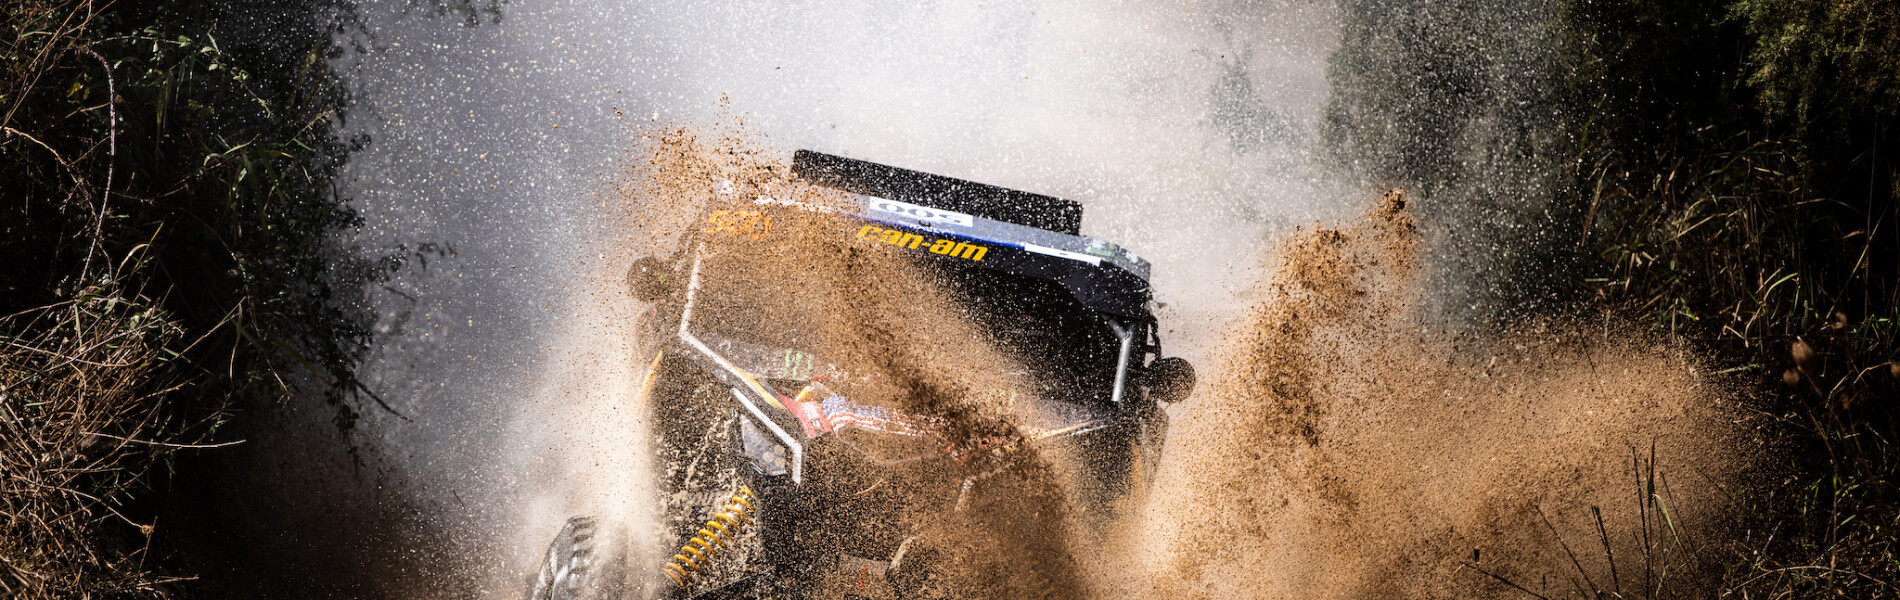 Monster Energy Can Am Team Images - 2020 Rally Andalucia